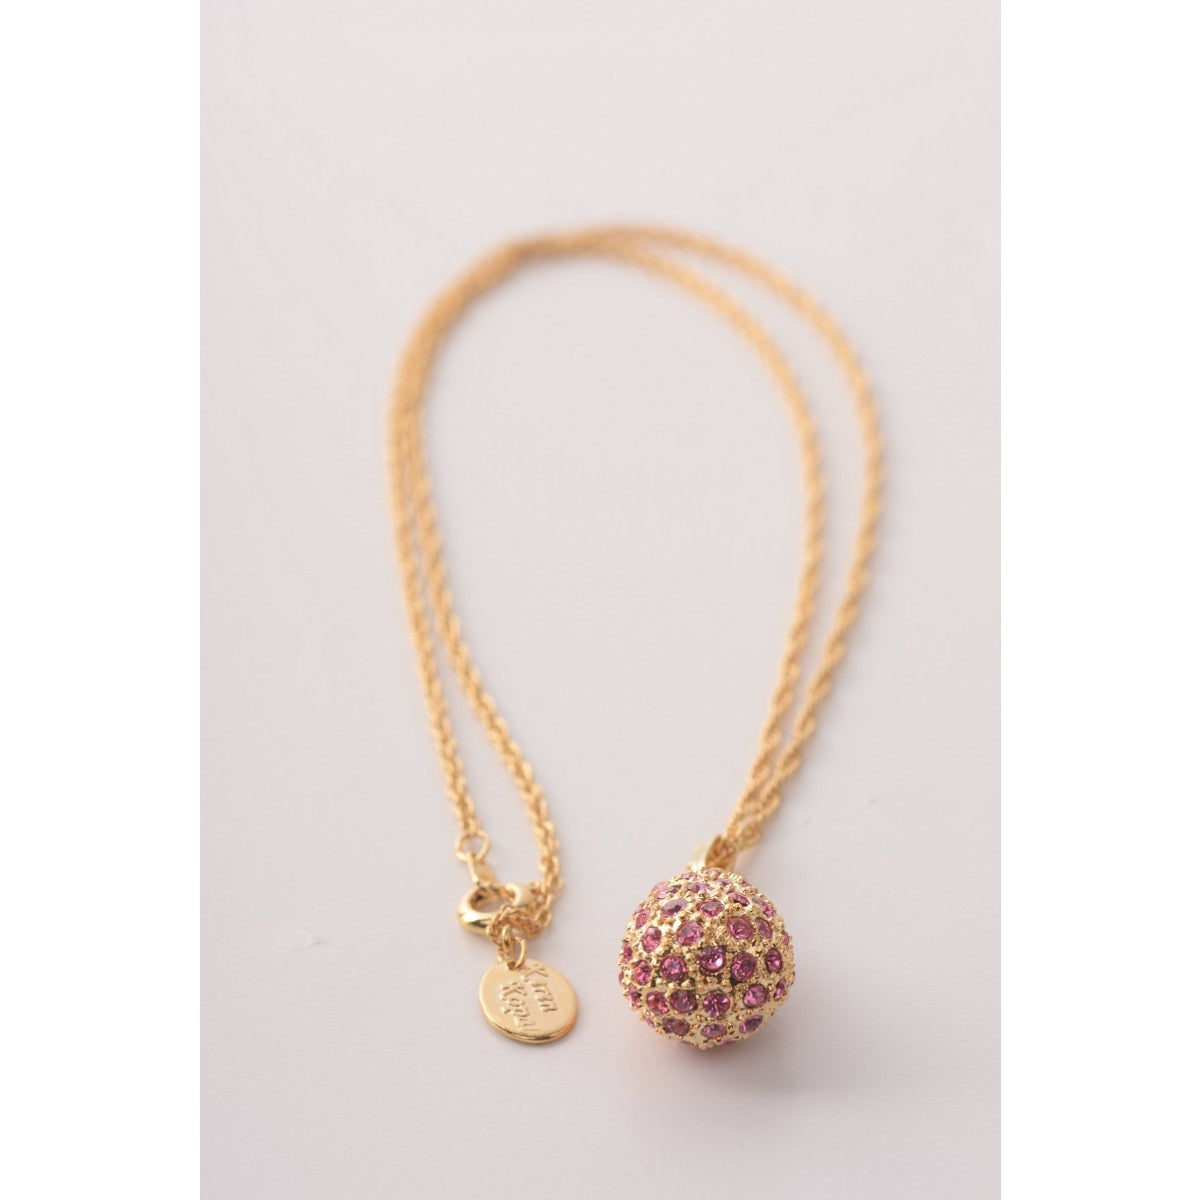 Gold with pink crystals Faberge Egg Pendant Necklace